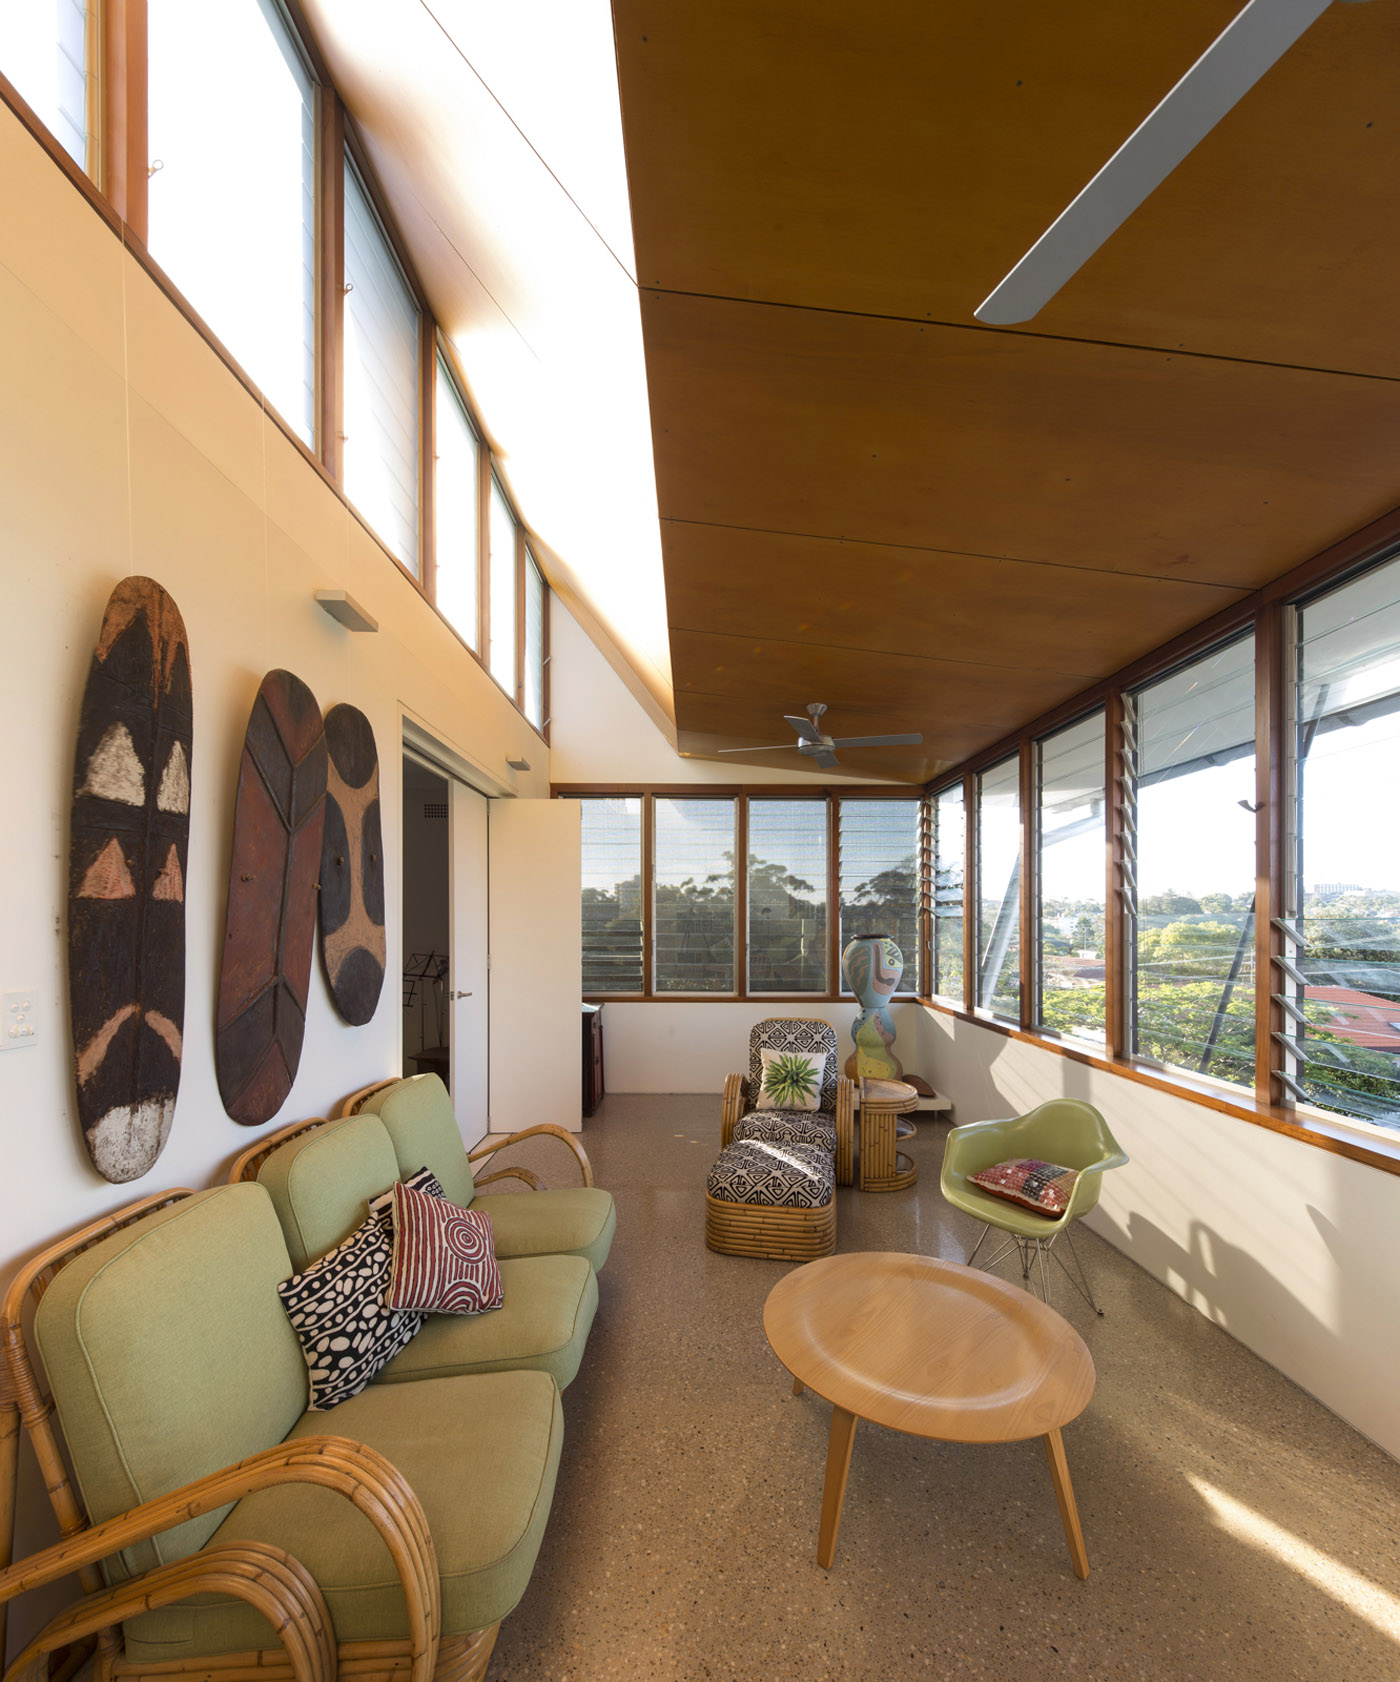 Salgo Kitching House by Sydney award winning architecture office Sam Crawford Architects. Folded timber lined ceiling and glass louver windows brings view into focus